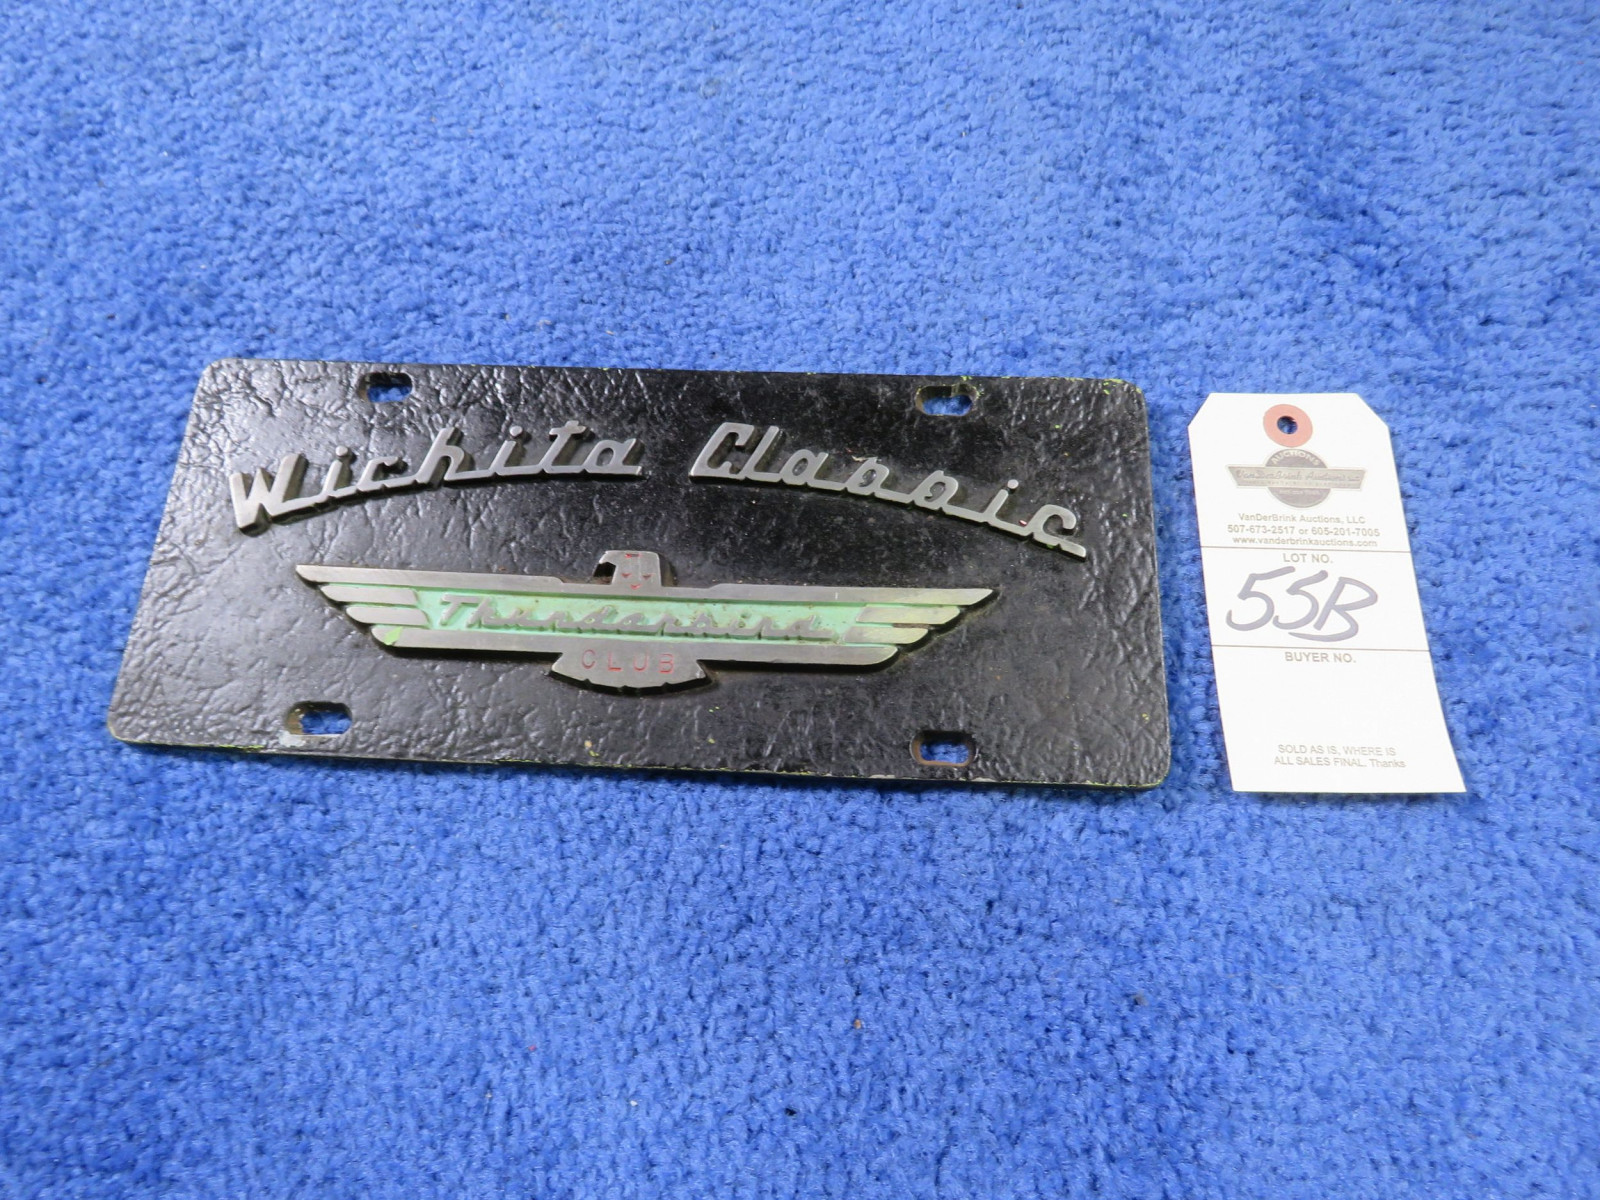 Wichita Classics and Thunderbirds Vintage Vehicle Club Plates- Pot Metal - Image 1